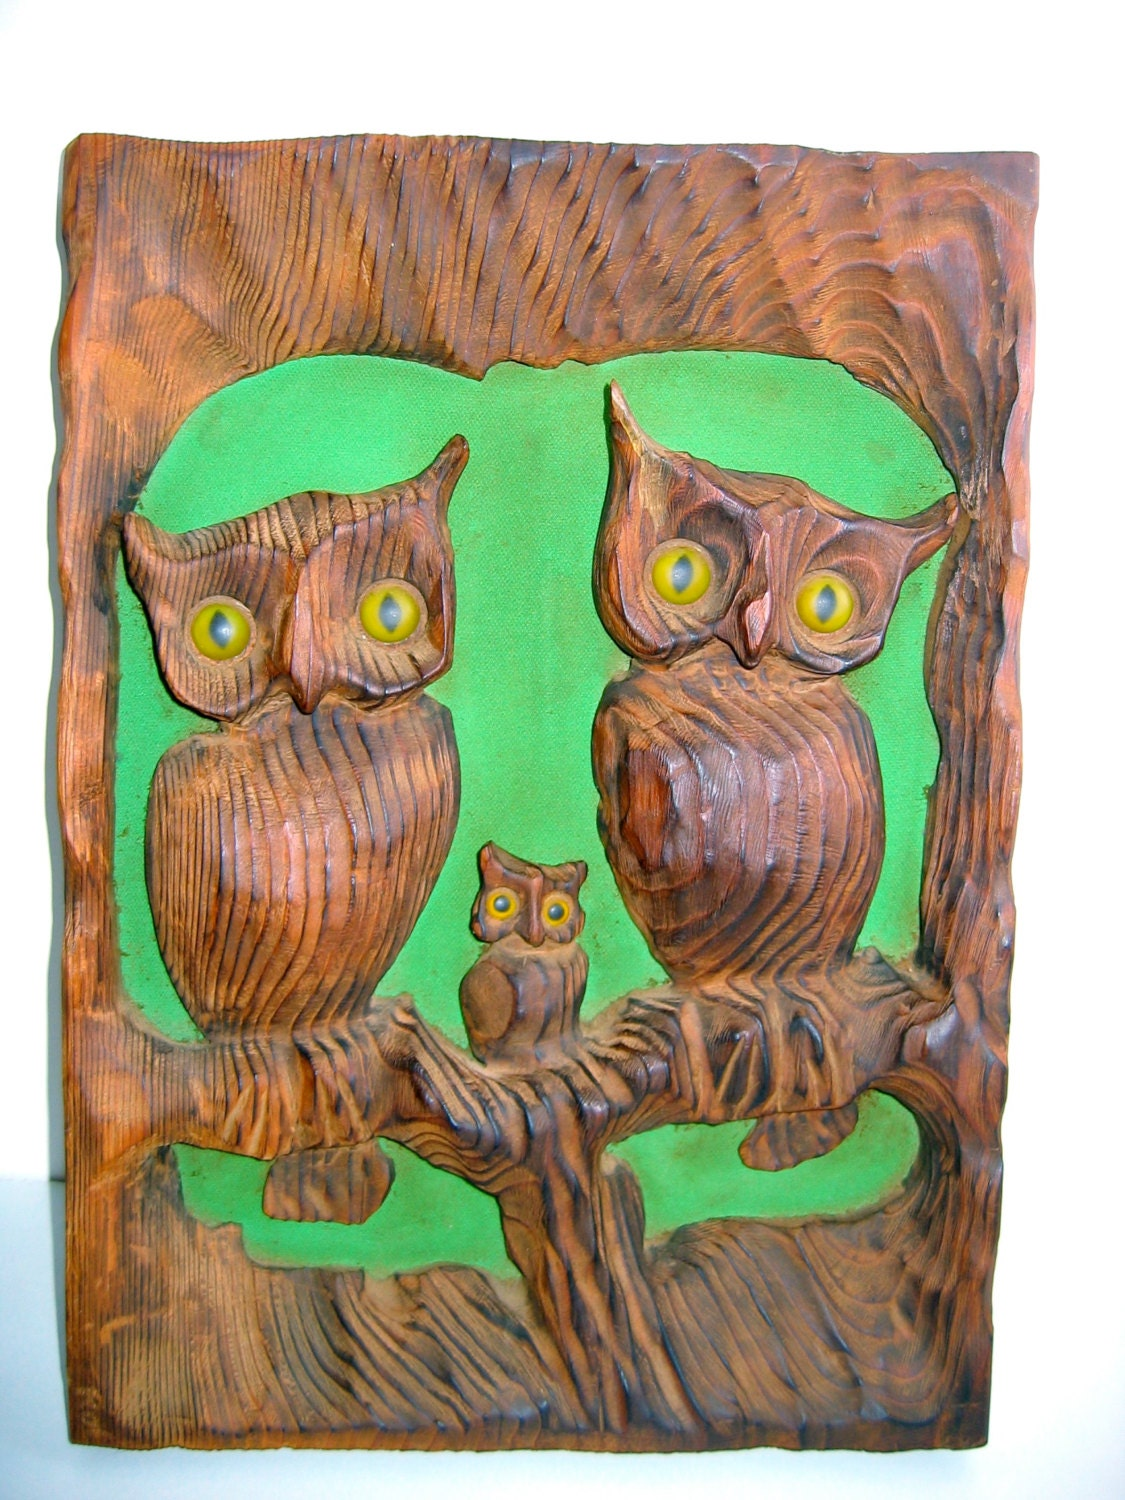 Vintage owl wall decor : S vintage owl wall decor wood plaque mod by